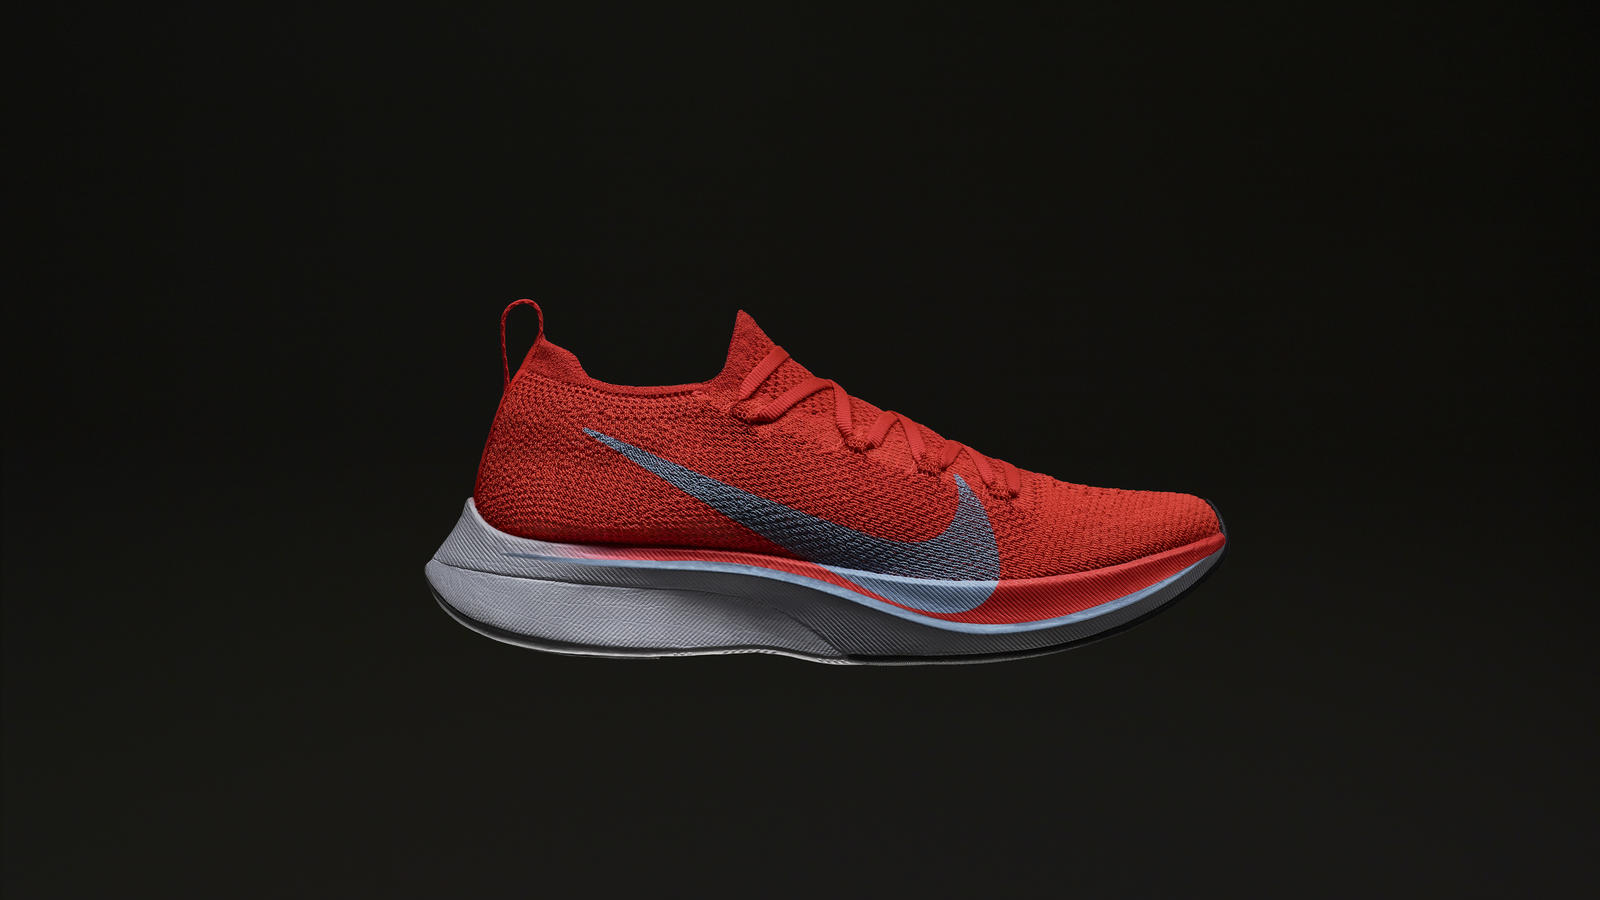 How to Get the Nike Zoom Vaporfly 4% - Nike News